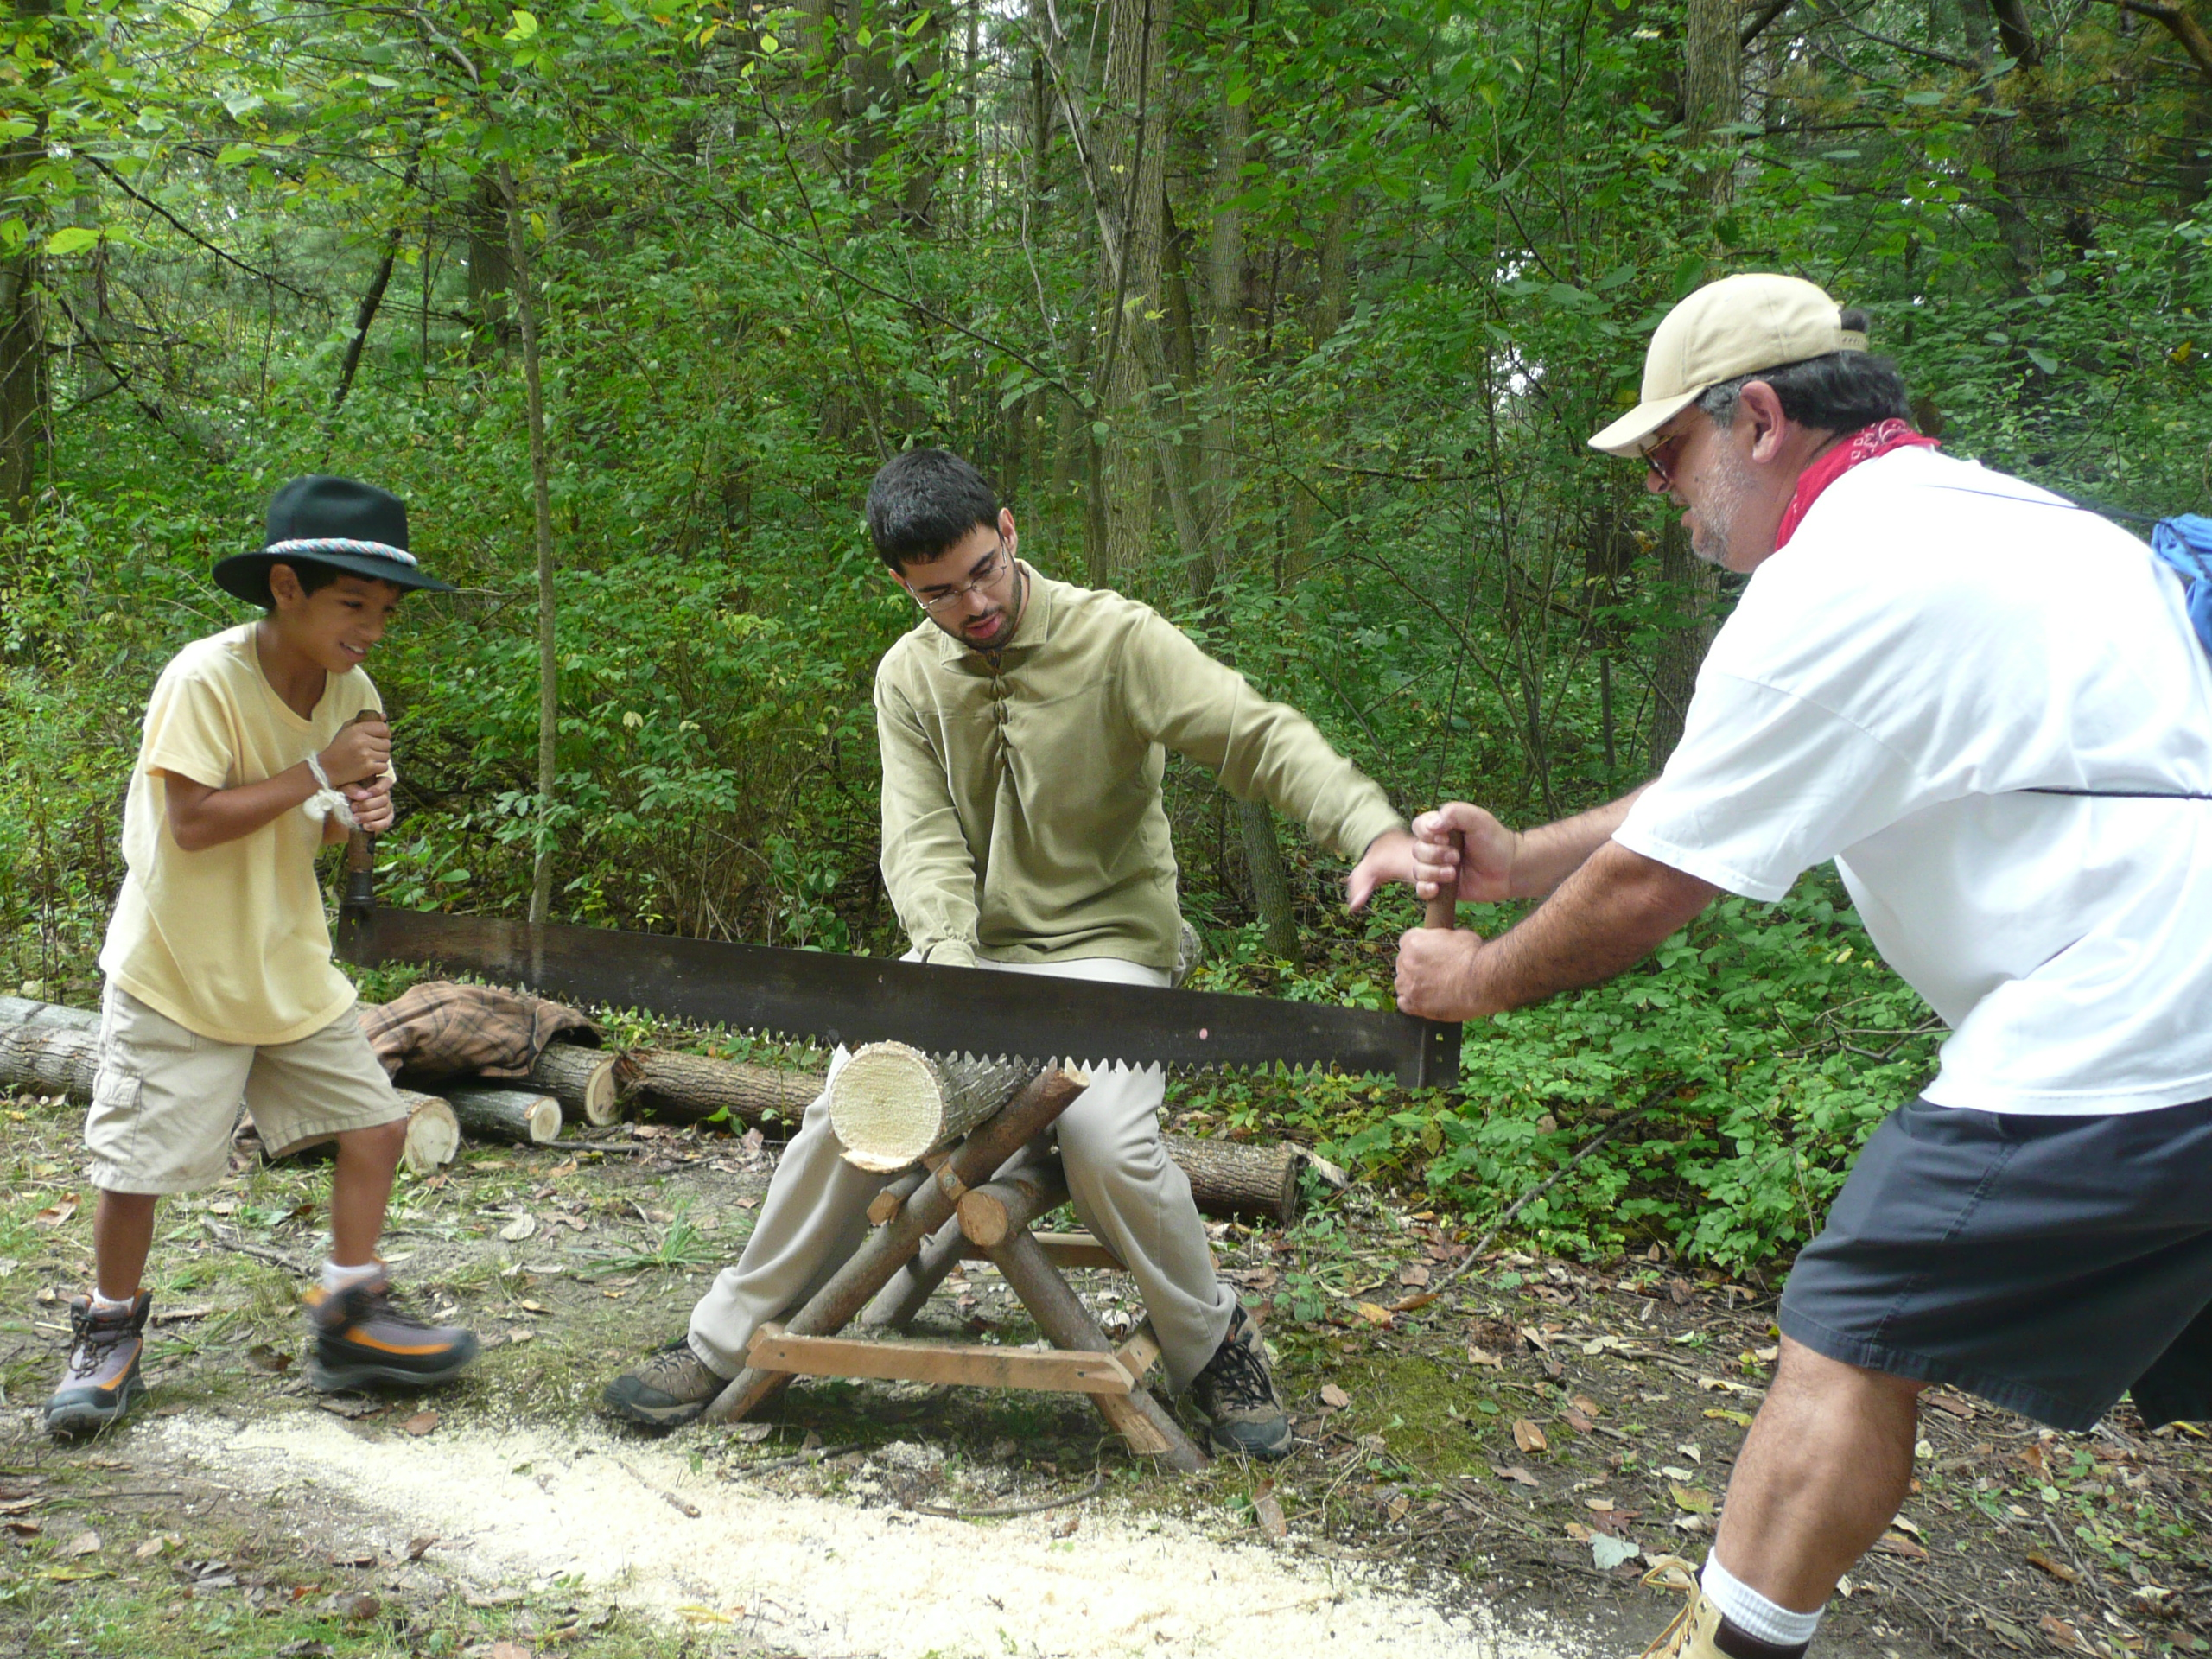 EXPERIENCE BYGONE DAYS AT CEDAR VALLEY SETTLERS CELEBRATION AND MUSIC FESTIVAL IN CLEVELAND METROPARKS ROCKY RIVER RESERVATION